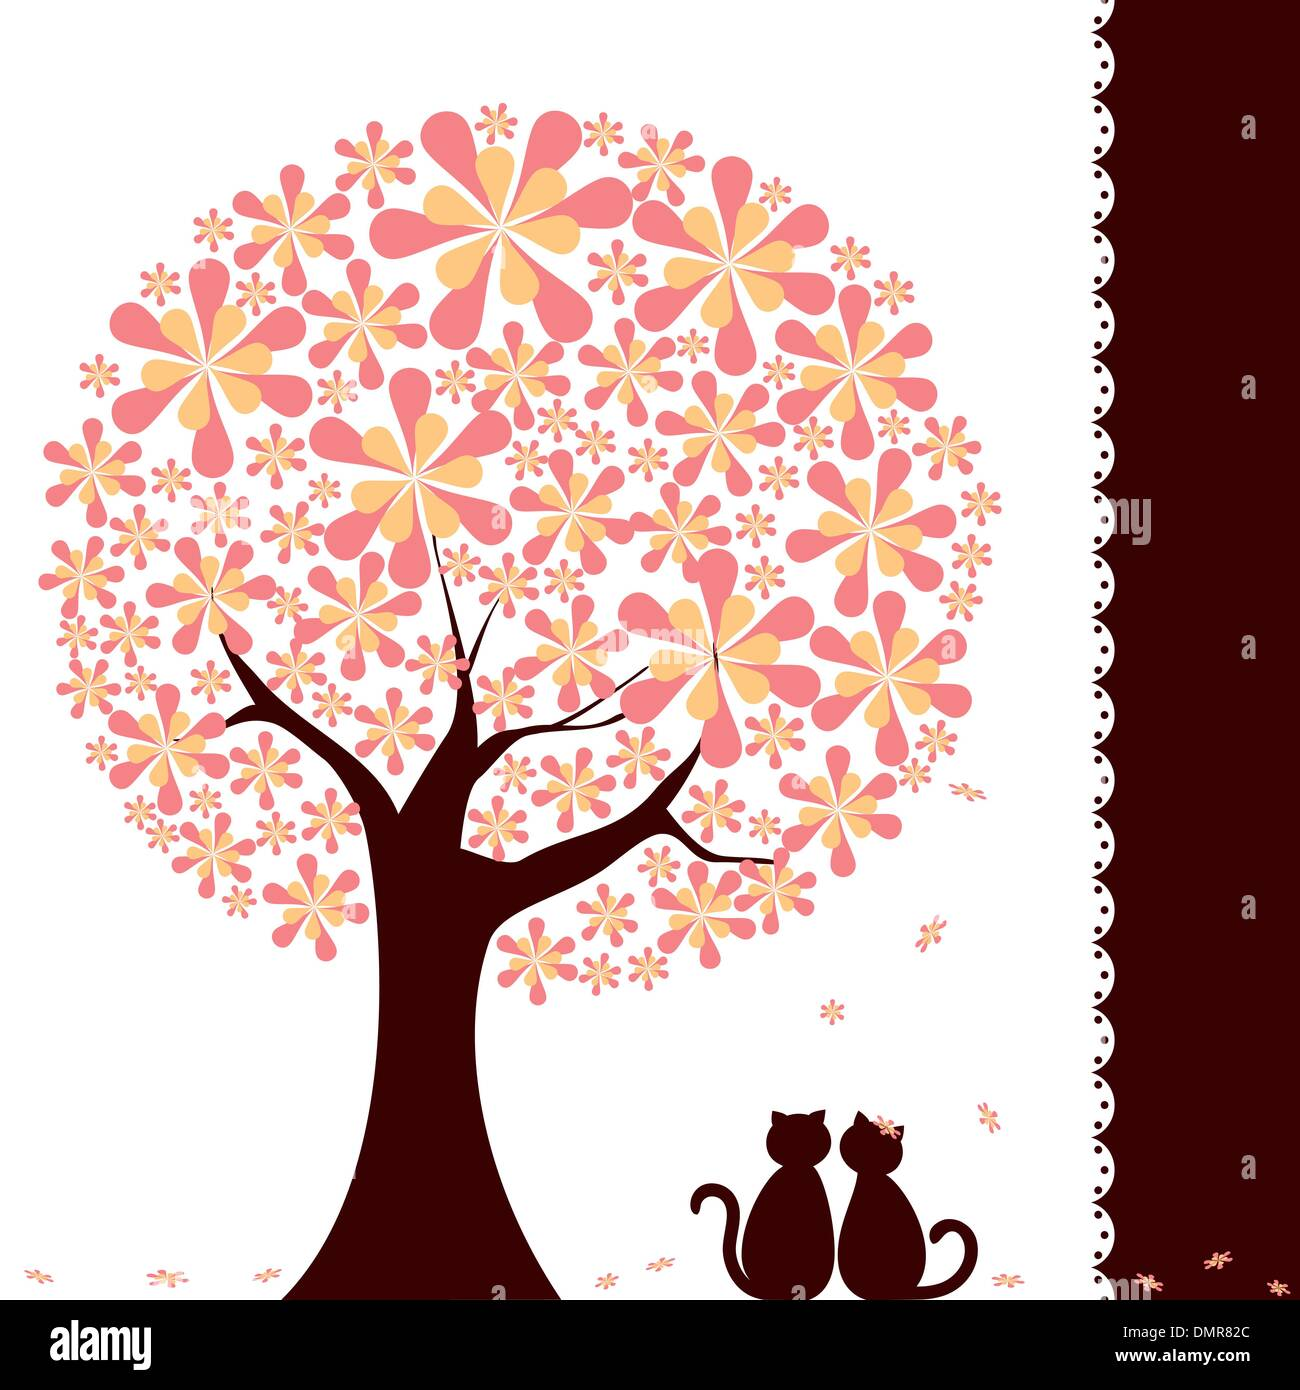 Springtime flower tree with love cats - Stock Image